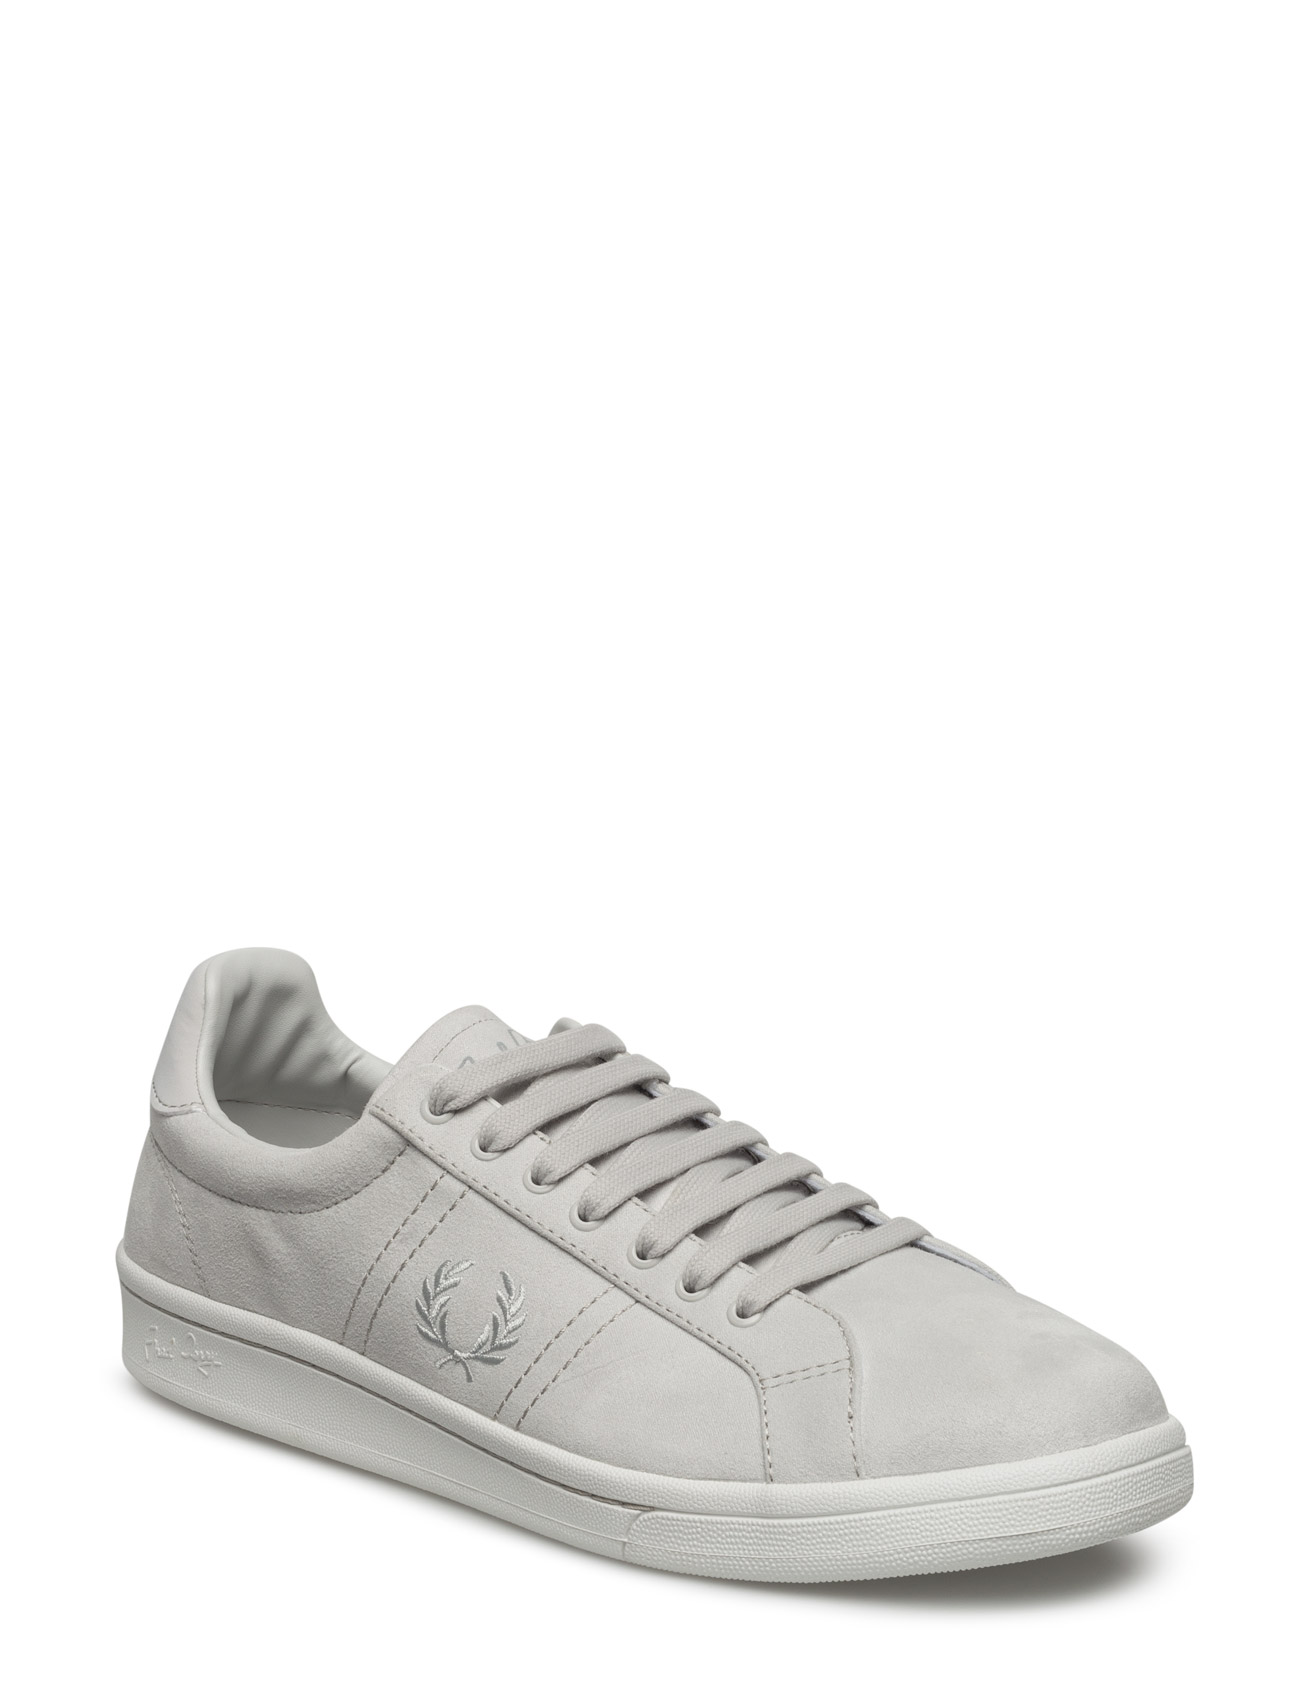 B721 Brushed Cotton Fred Perry Sneakers til Herrer i